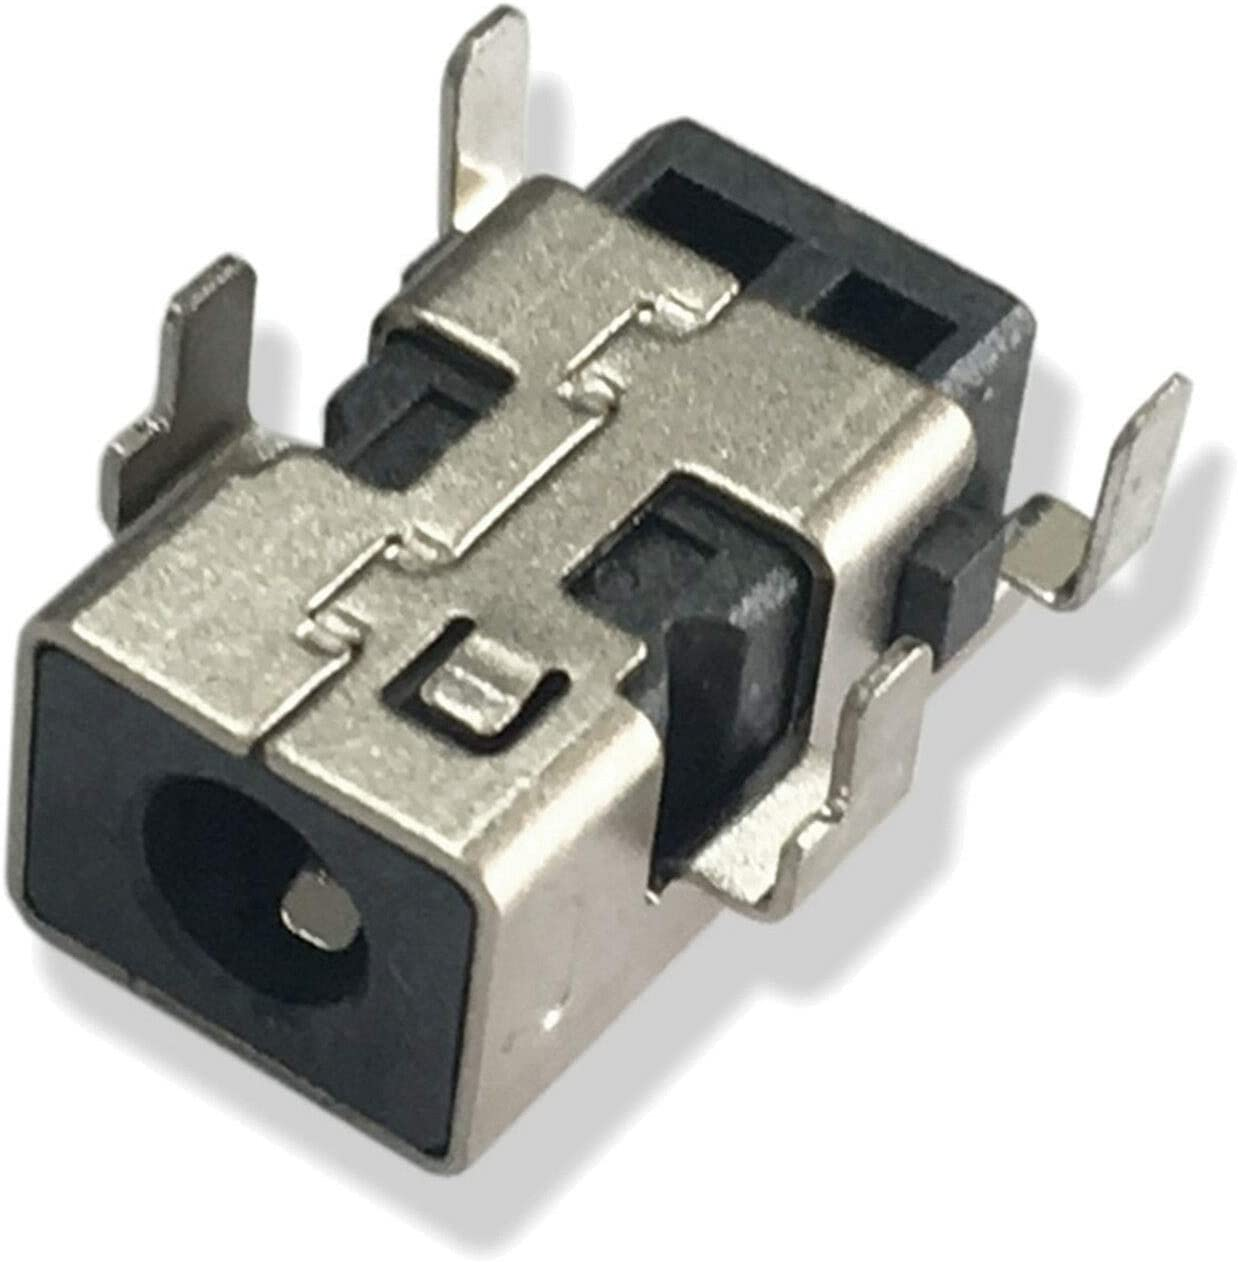 CAQL DC Power Jack Ranking TOP9 Charging Port Cheap bargain for R5-571t-57Z0 Acer R R5-571t